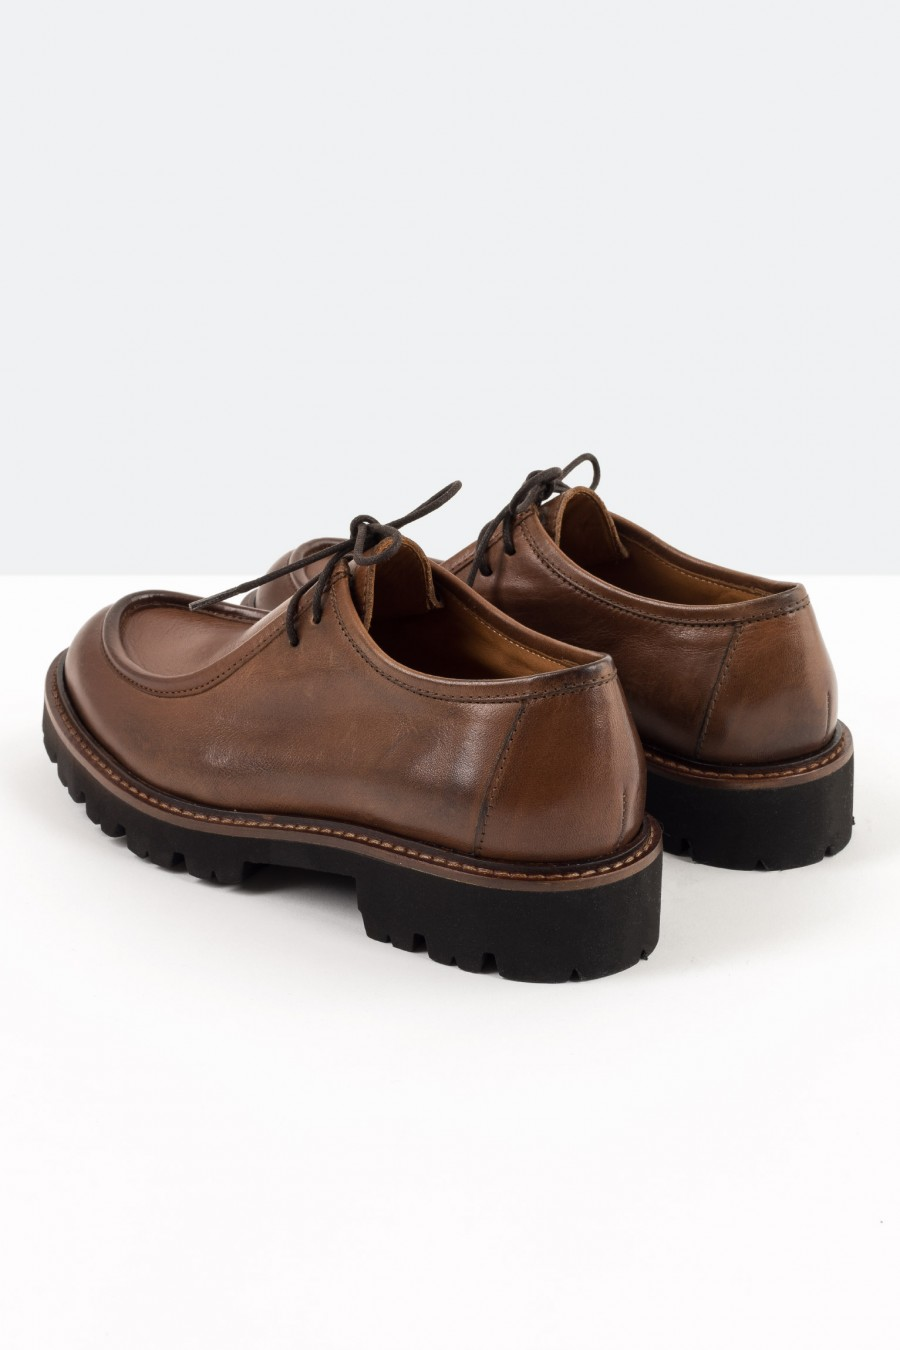 Engineer loafers with cleated sole